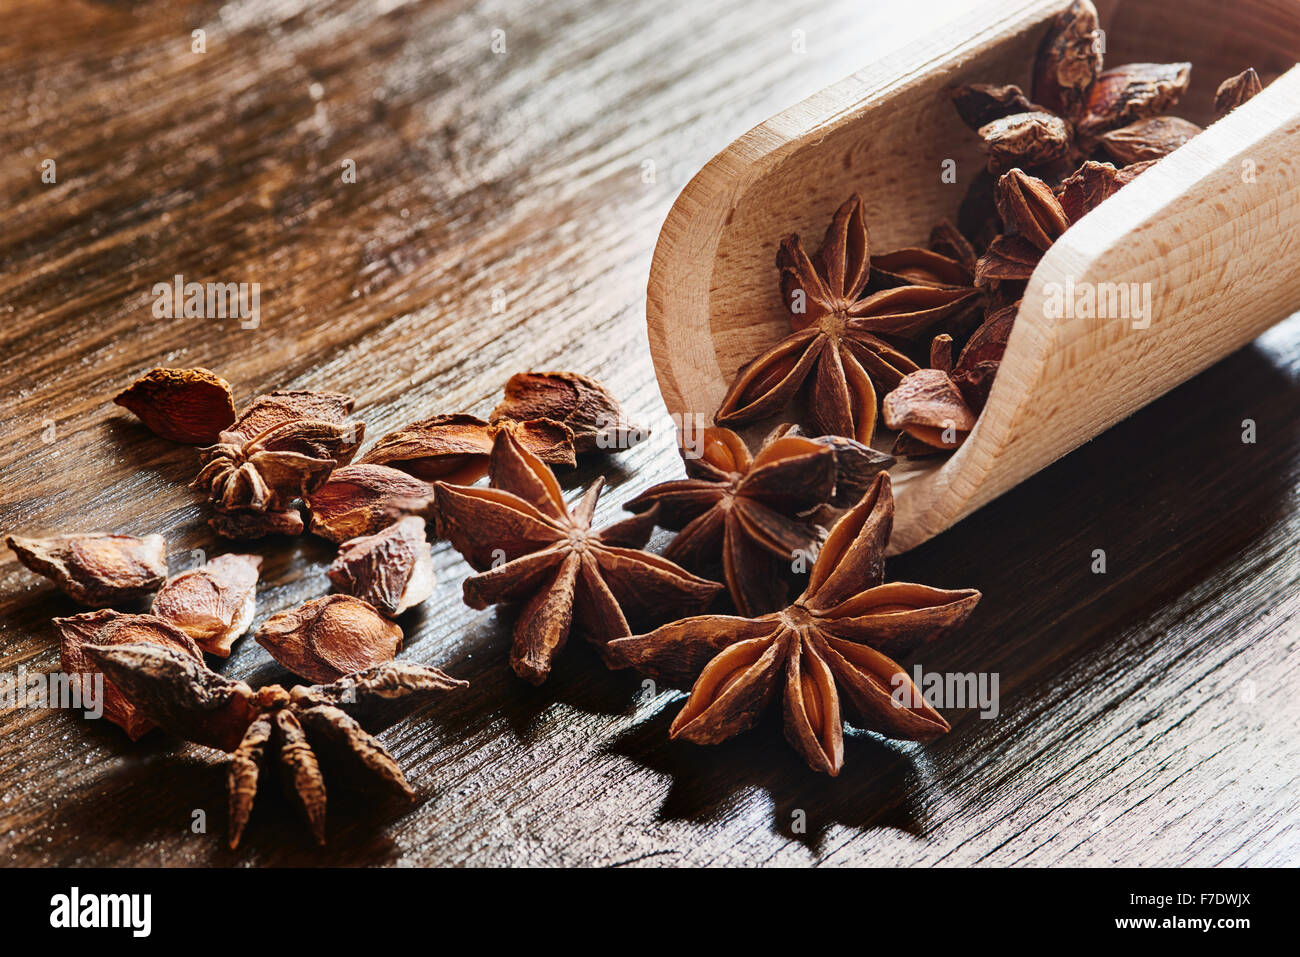 Star anise on wooden spoon on wooden table - Stock Image